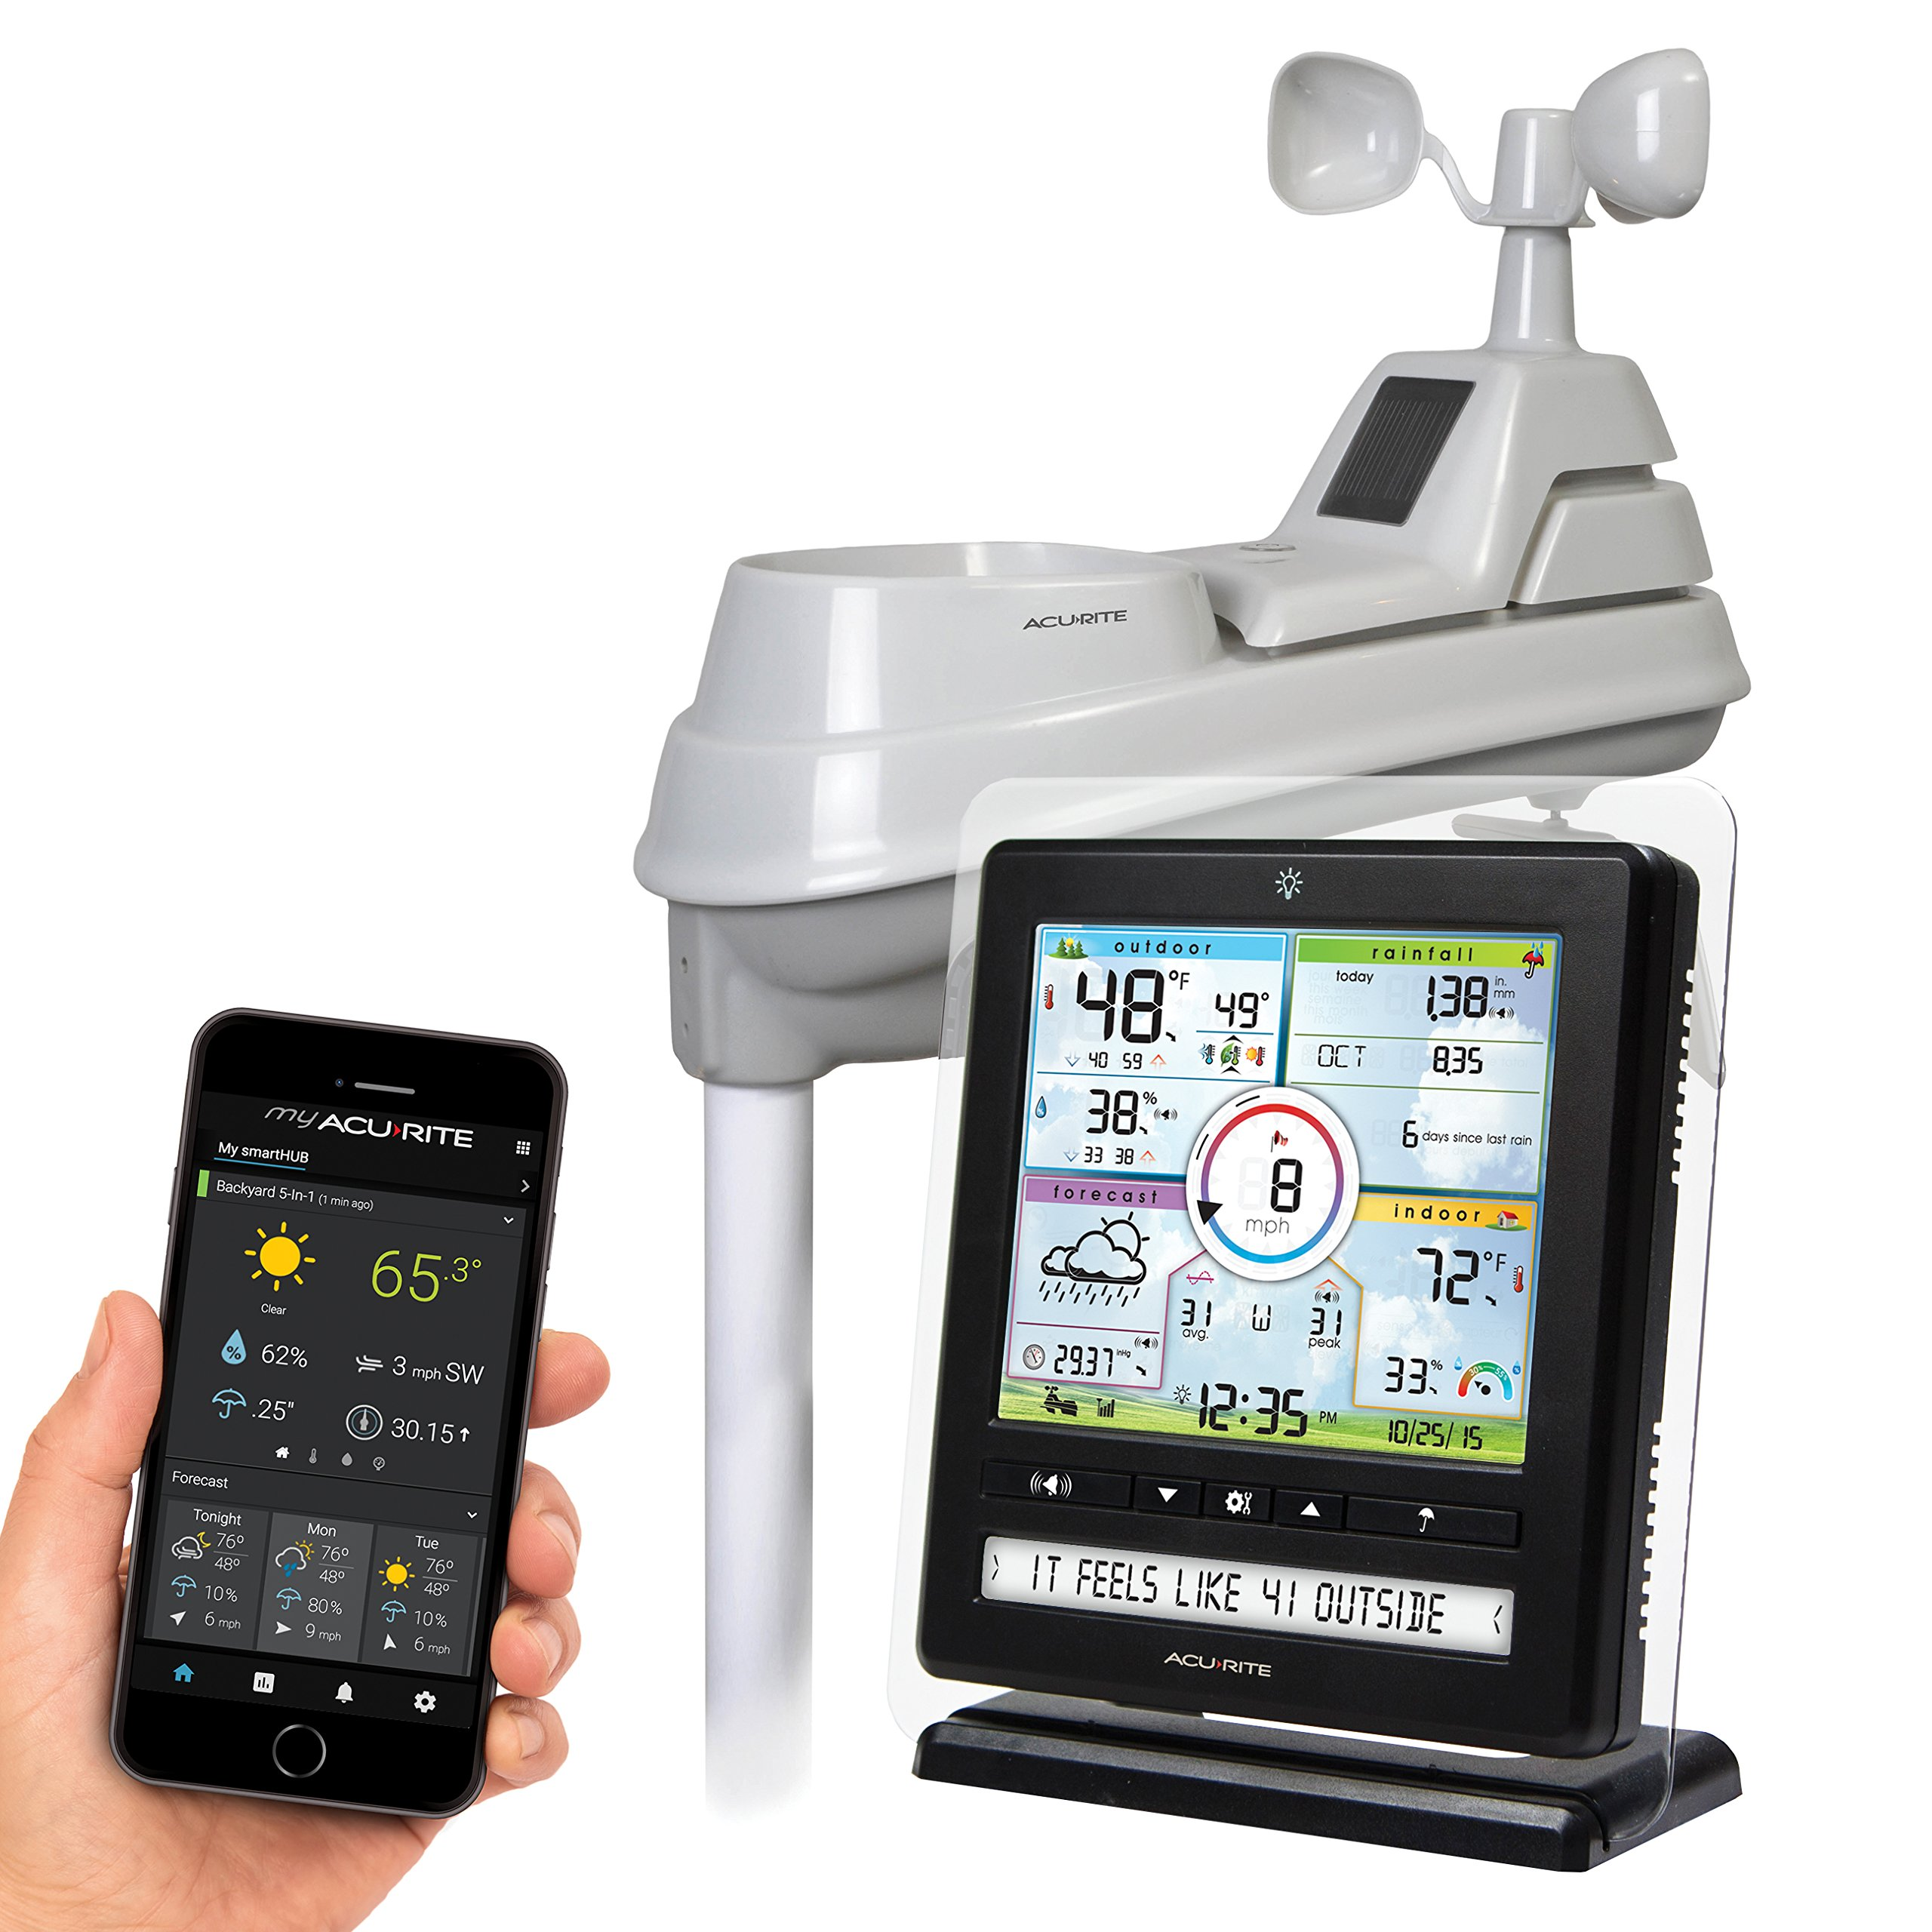 AcuRite 01536 Wireless Weather Station with PC Connect, 5-in-1 Weather Sensor and My AcuRite Remote Monitoring Weather App by AcuRite